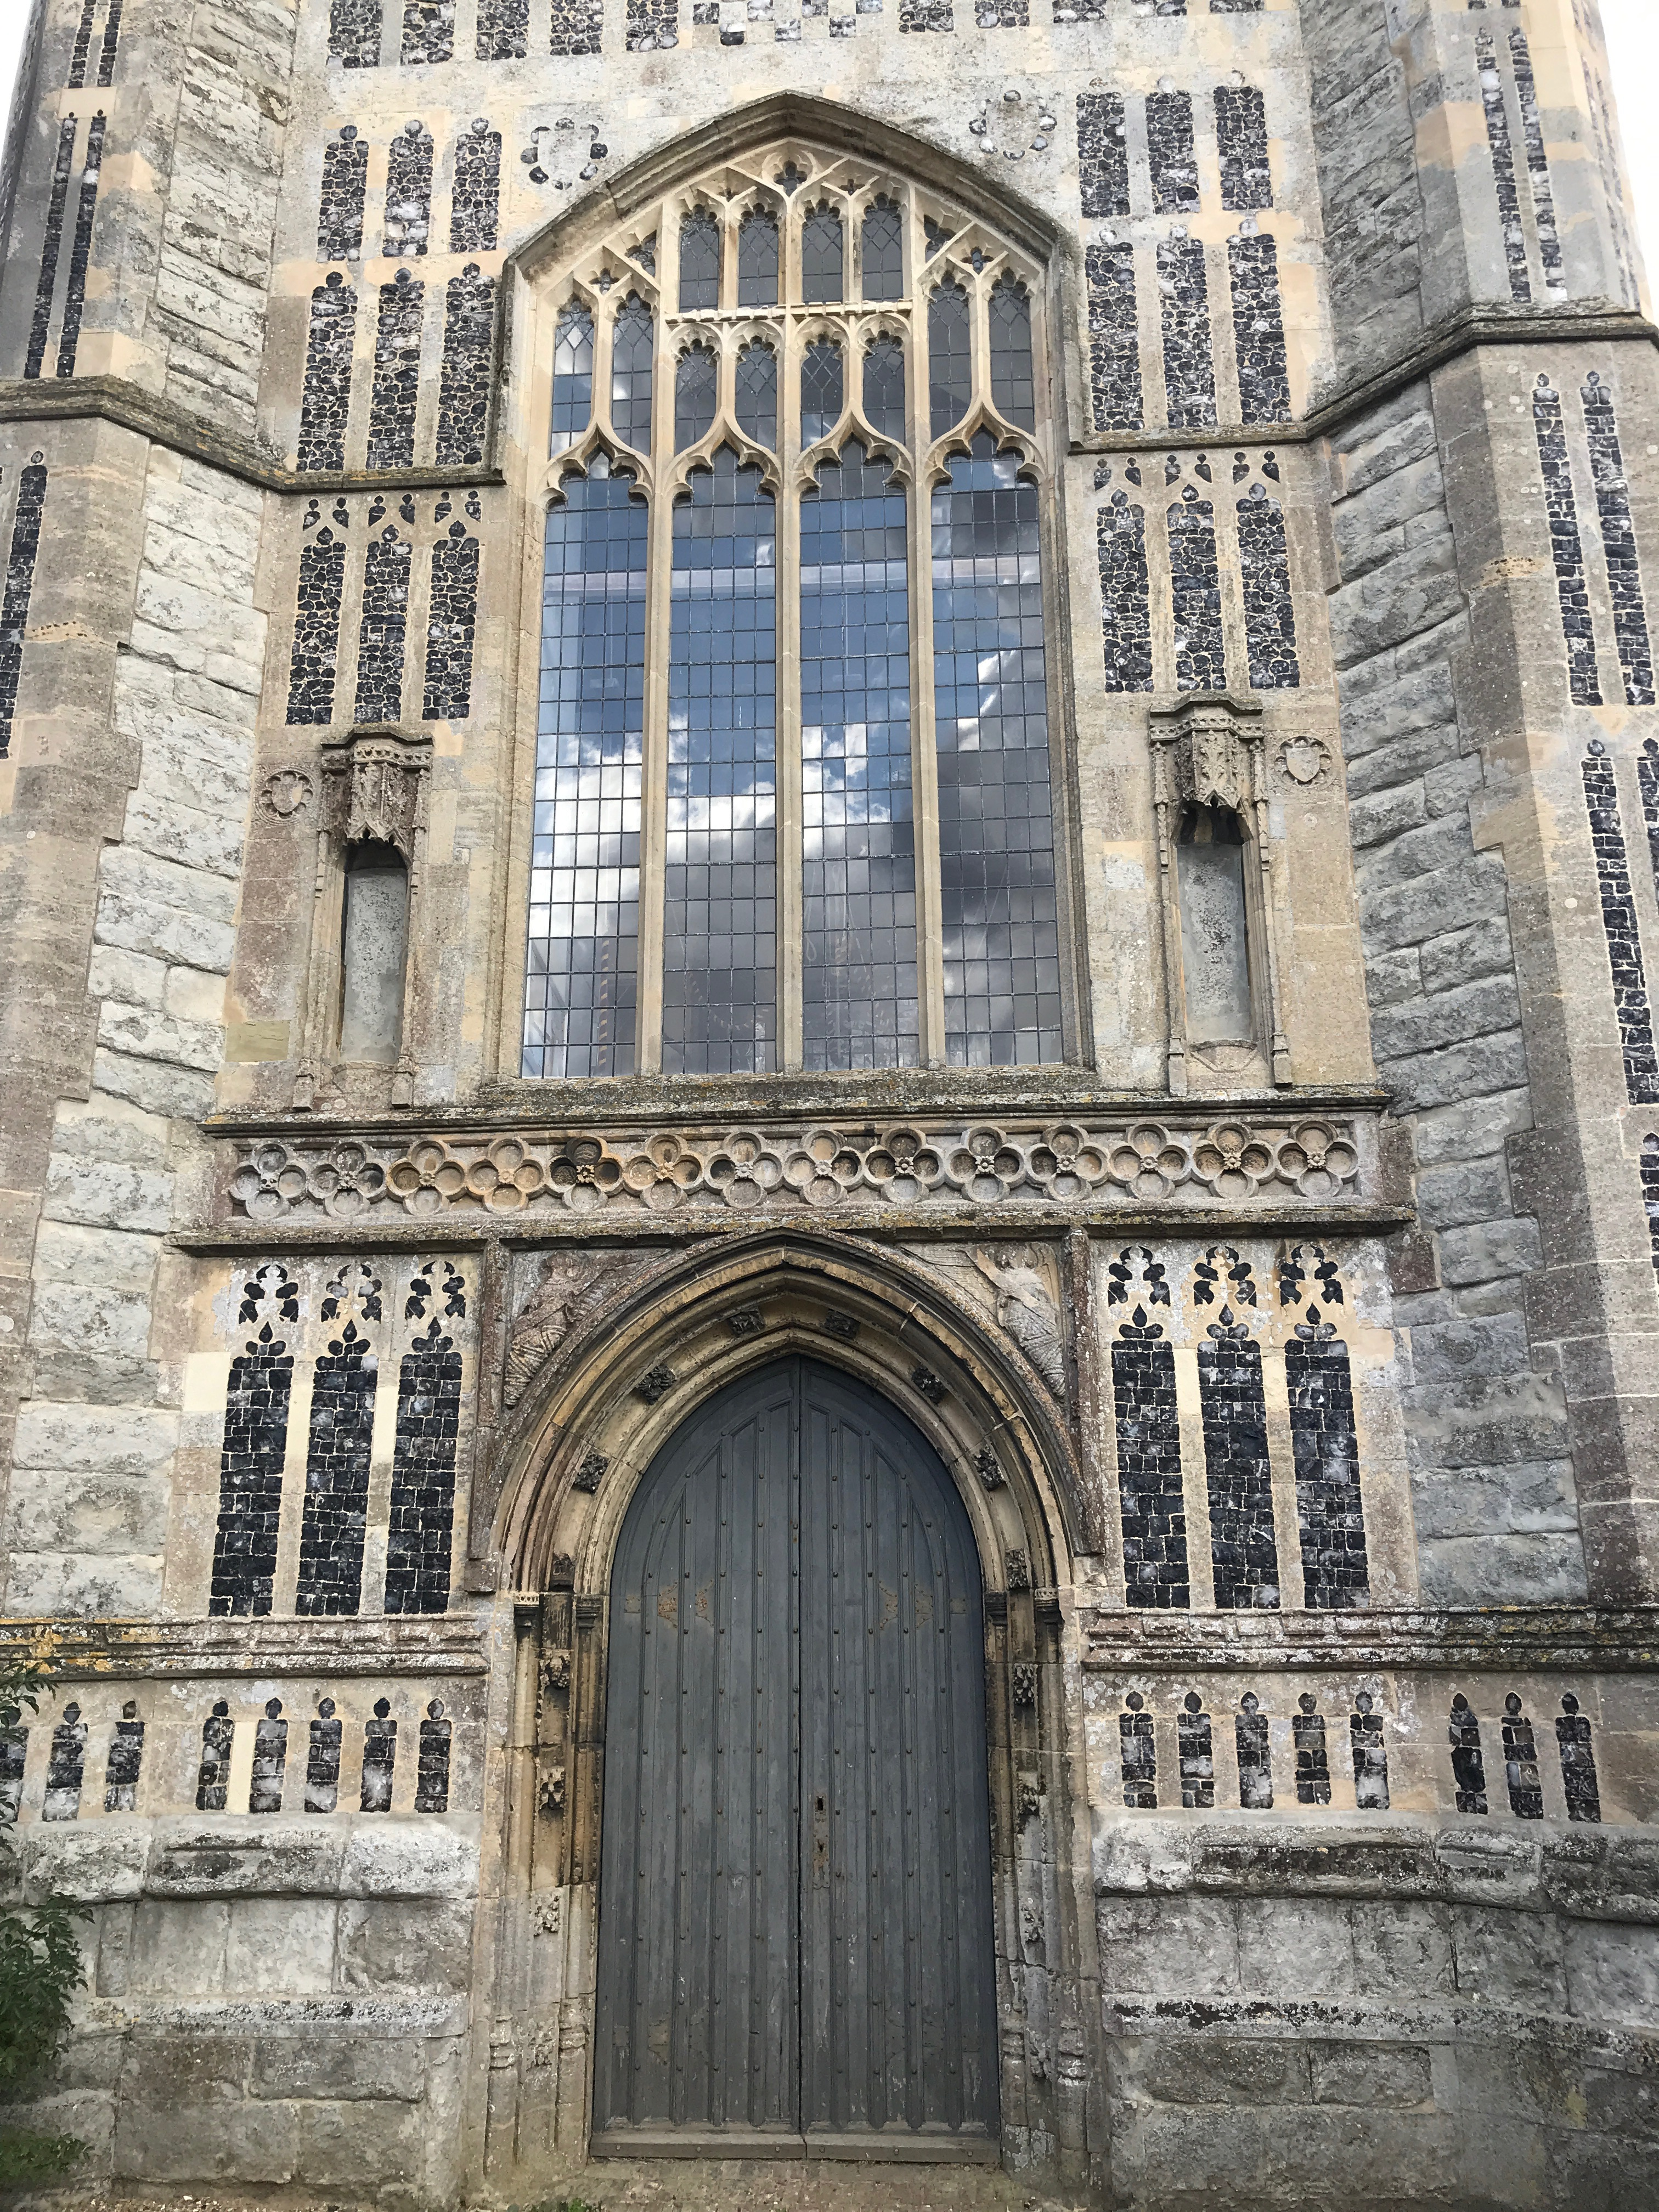 Empty recesses where angels have been removed by Puritan activists, 1600s. Laxfield, Suffolk, England.